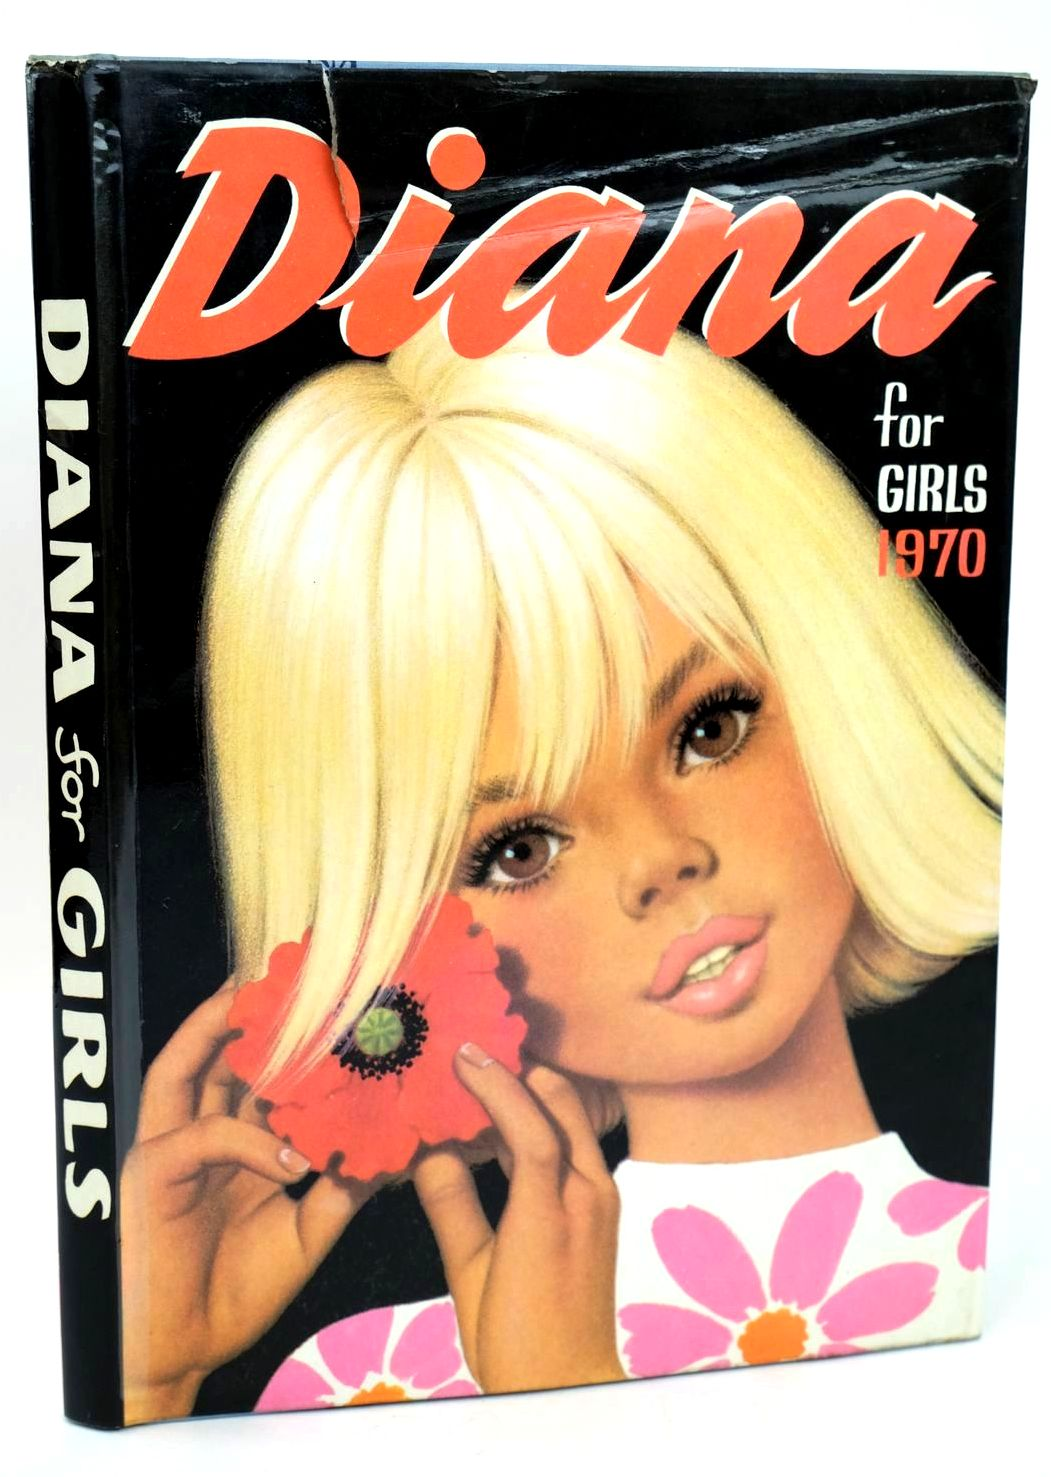 Photo of DIANA FOR GIRLS 1970 published by D.C. Thomson & Co Ltd. (STOCK CODE: 1318532)  for sale by Stella & Rose's Books